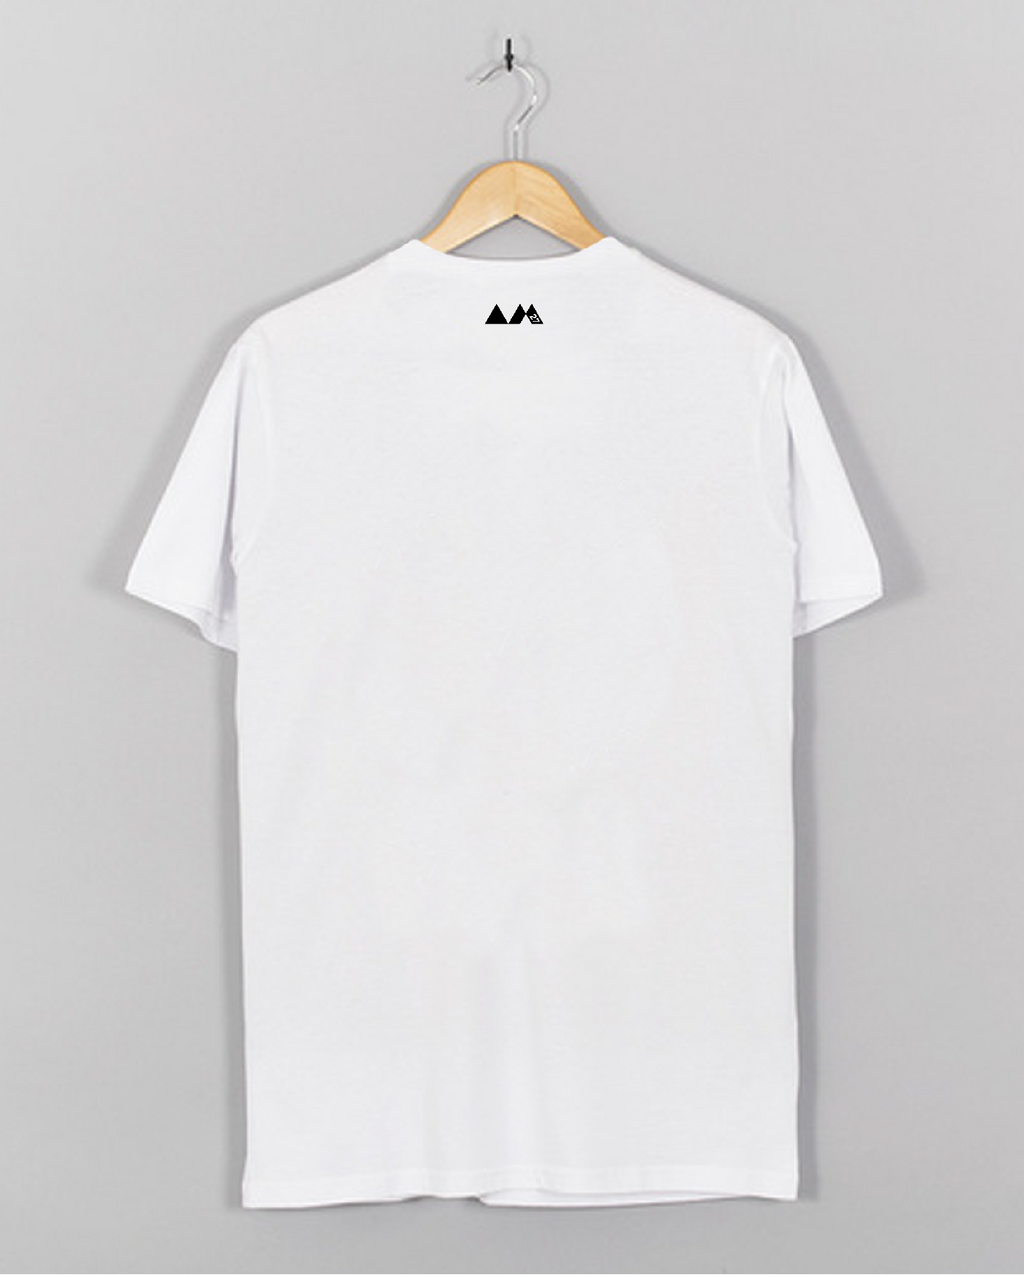 AM27 EYES PRINT TEE - WHITE